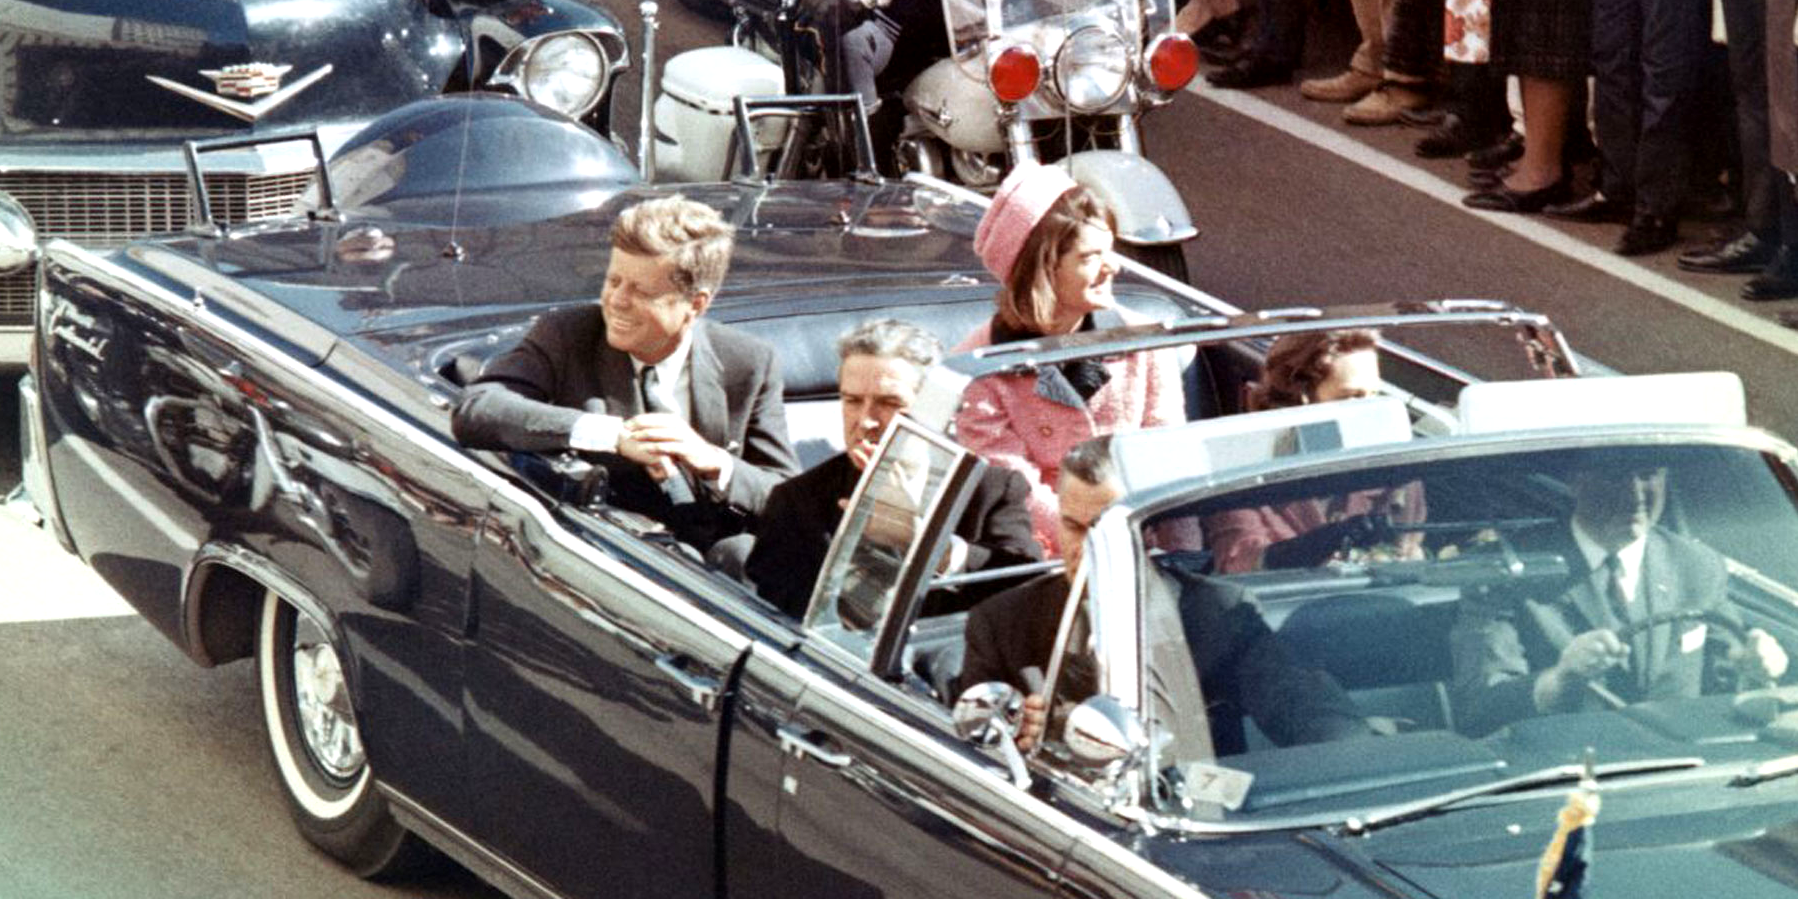 File:JFK limousine cut off ver..png - Wikipedia